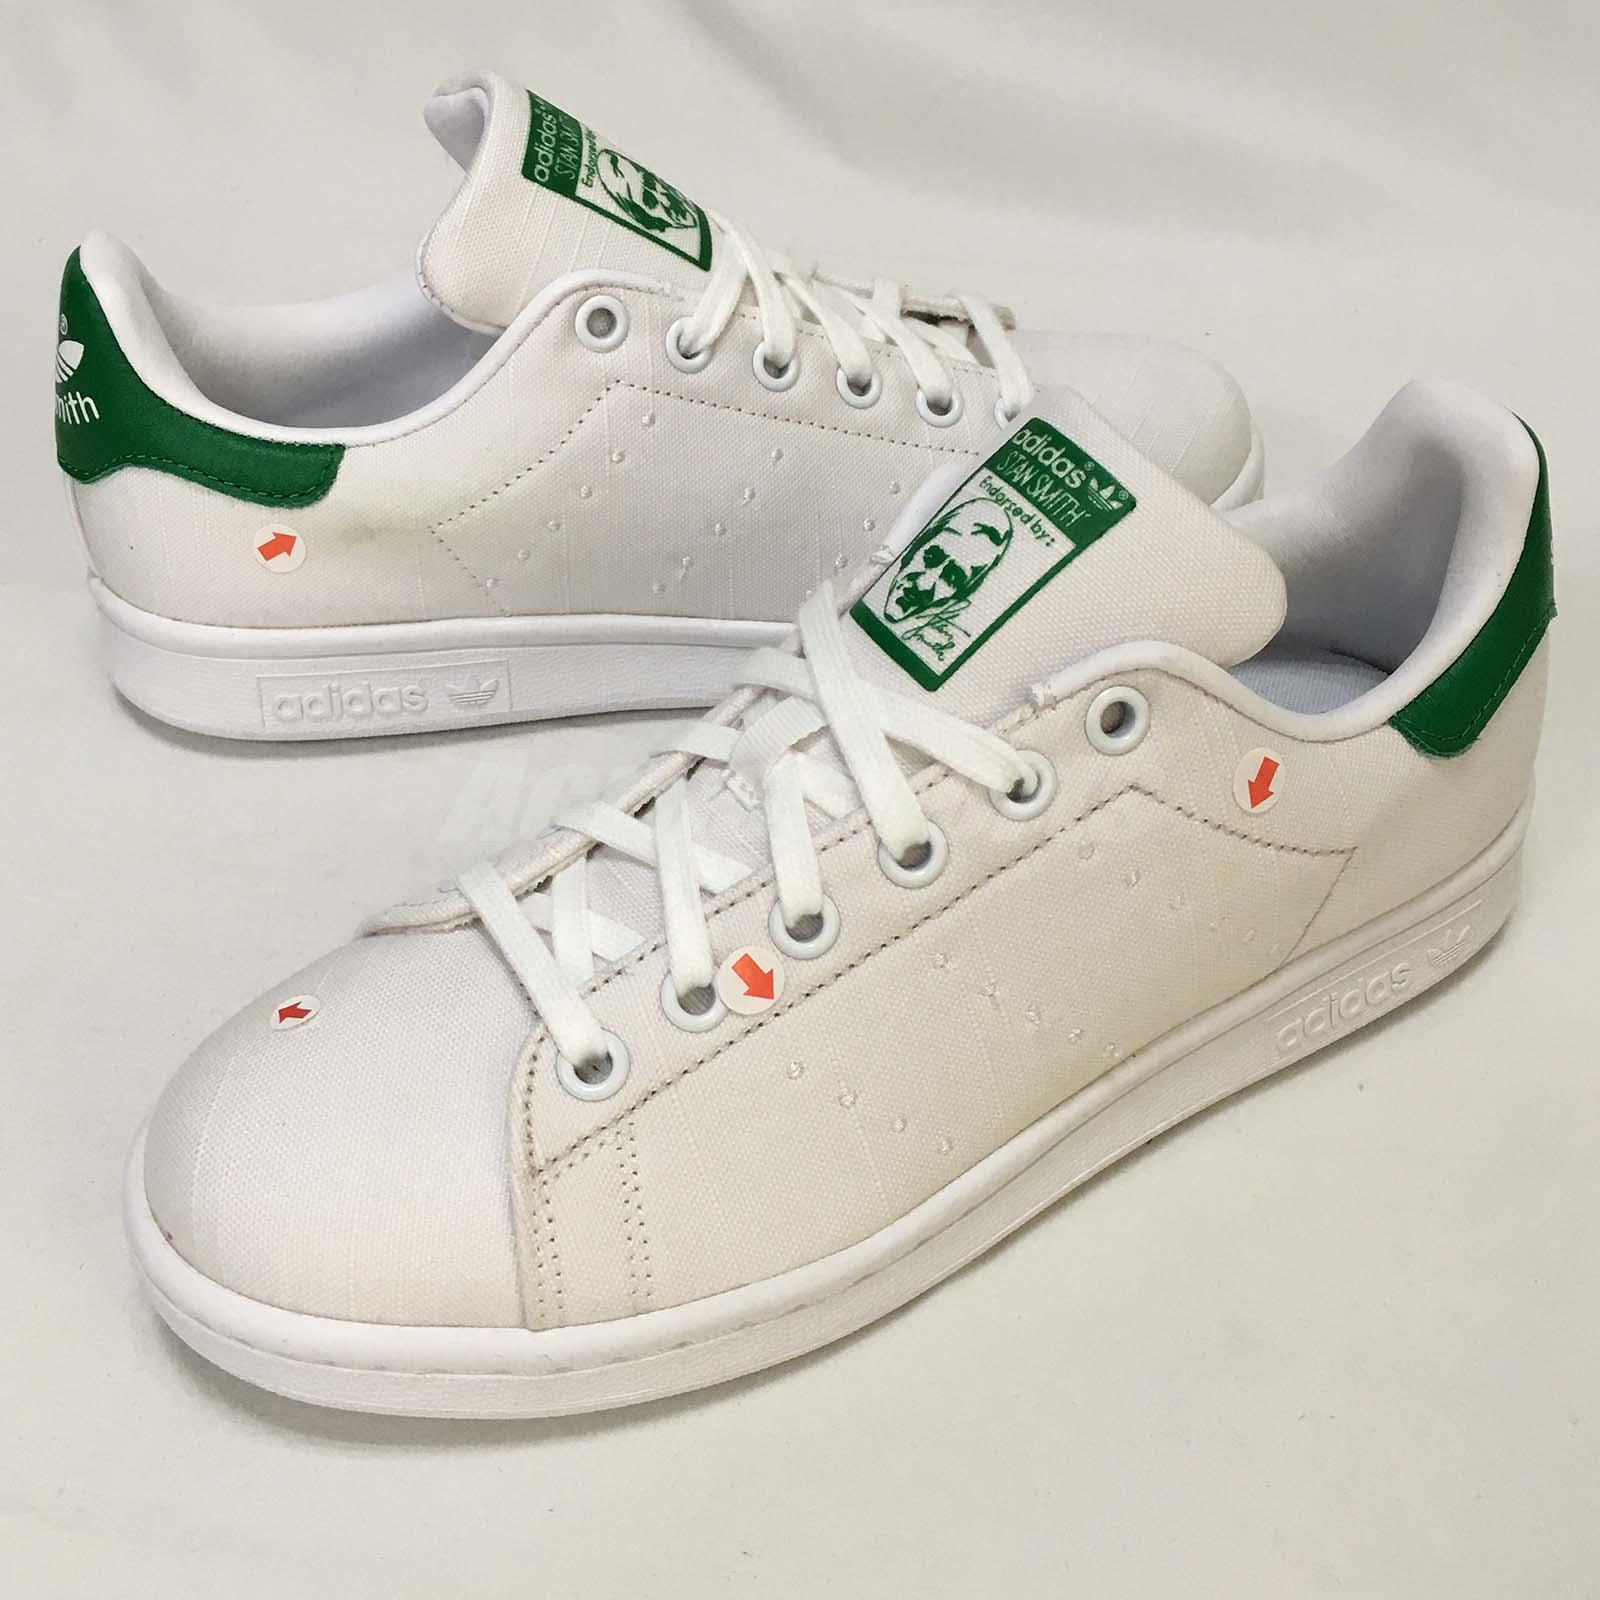 Détails Serious Feet Both W S75560 Shoes Women Original Stan Smith Adidas Sur With Stain 8nP0NmwyvO